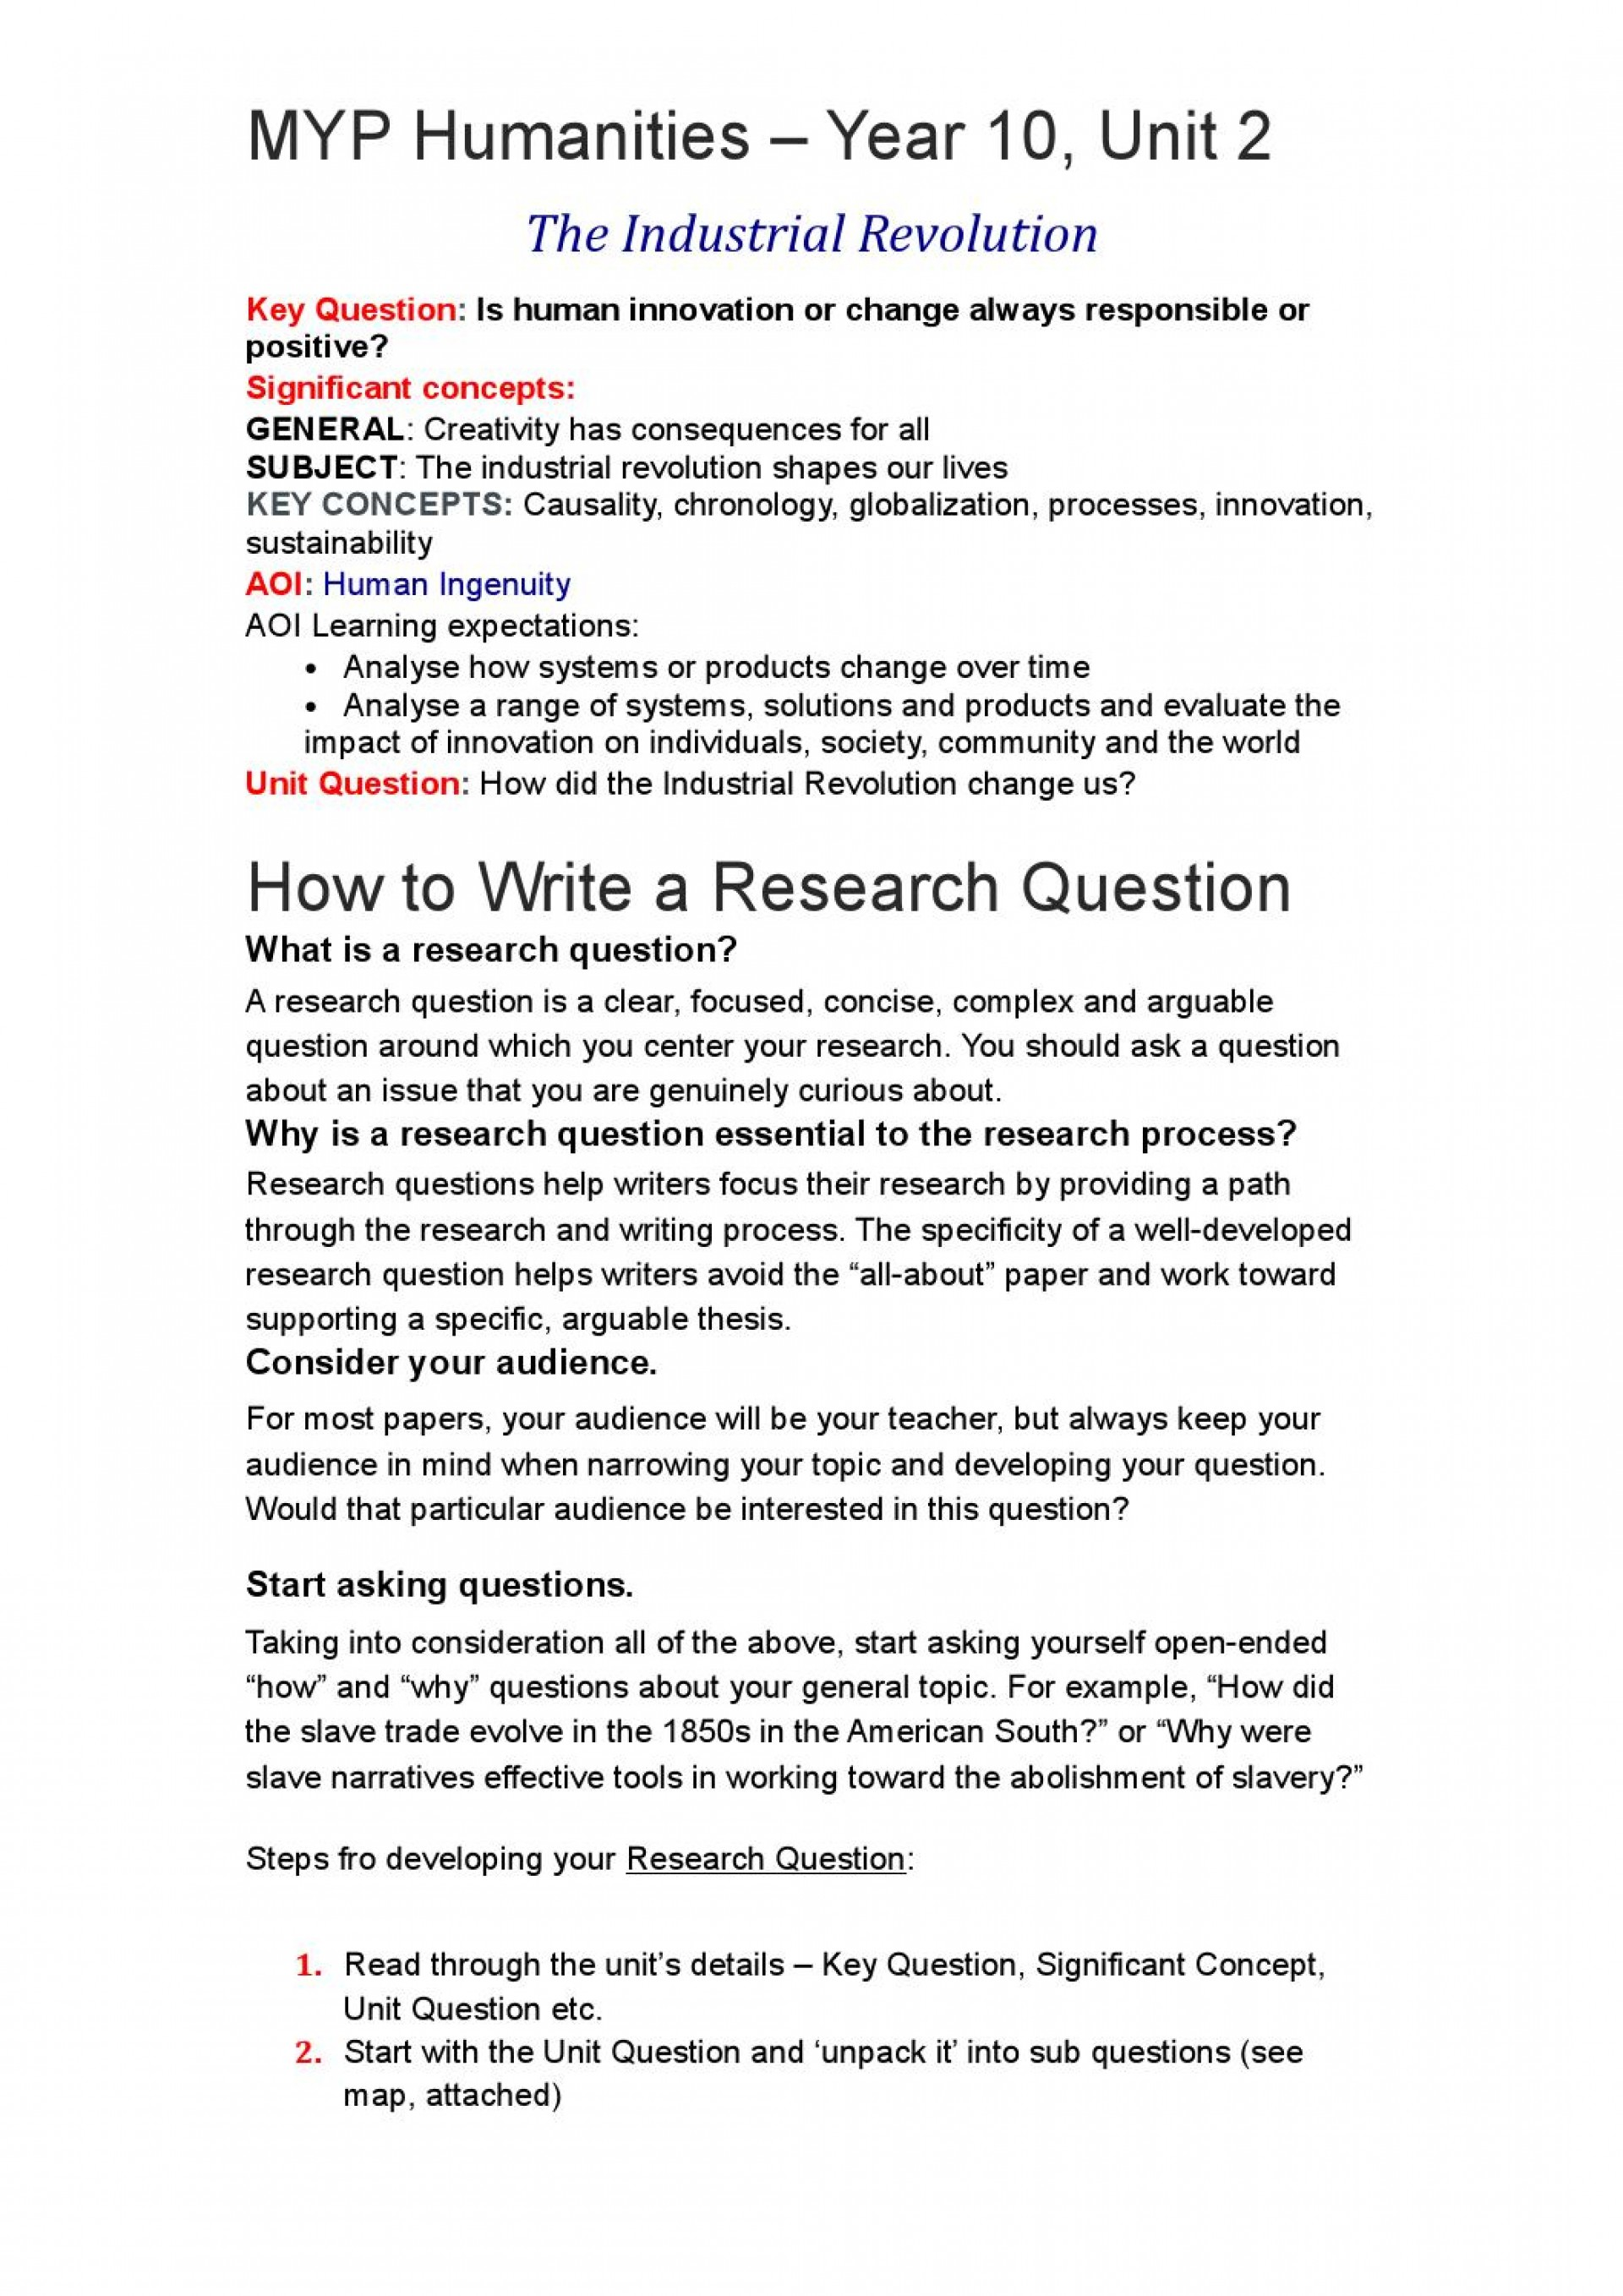 015 Page 1 Questions For Research Formidable Paper Examples Abortion Topic 1920